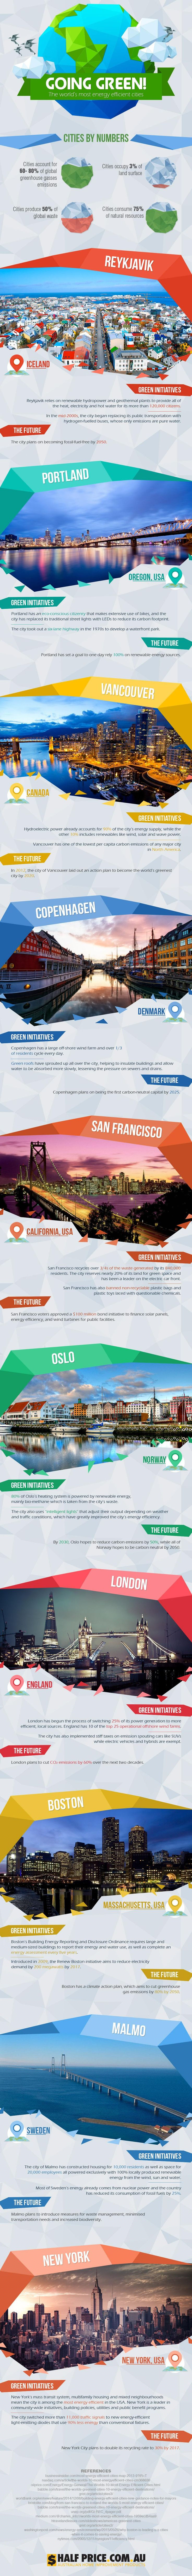 Going Green The World S Most Energy Efficient Cities Infographic